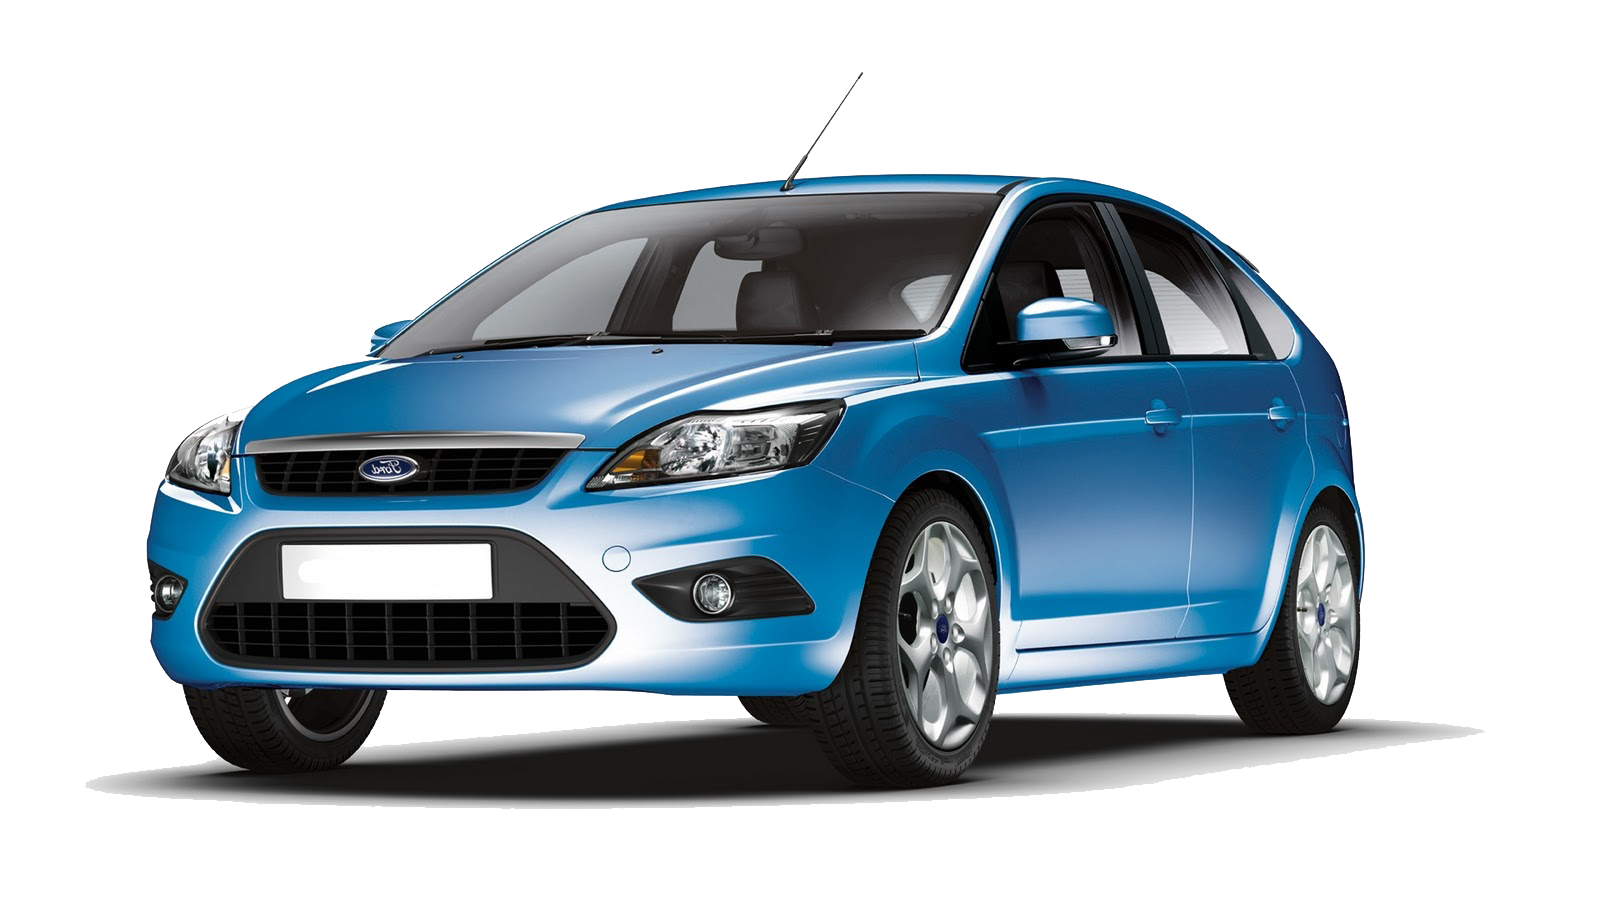 uploads ford ford PNG12239 3